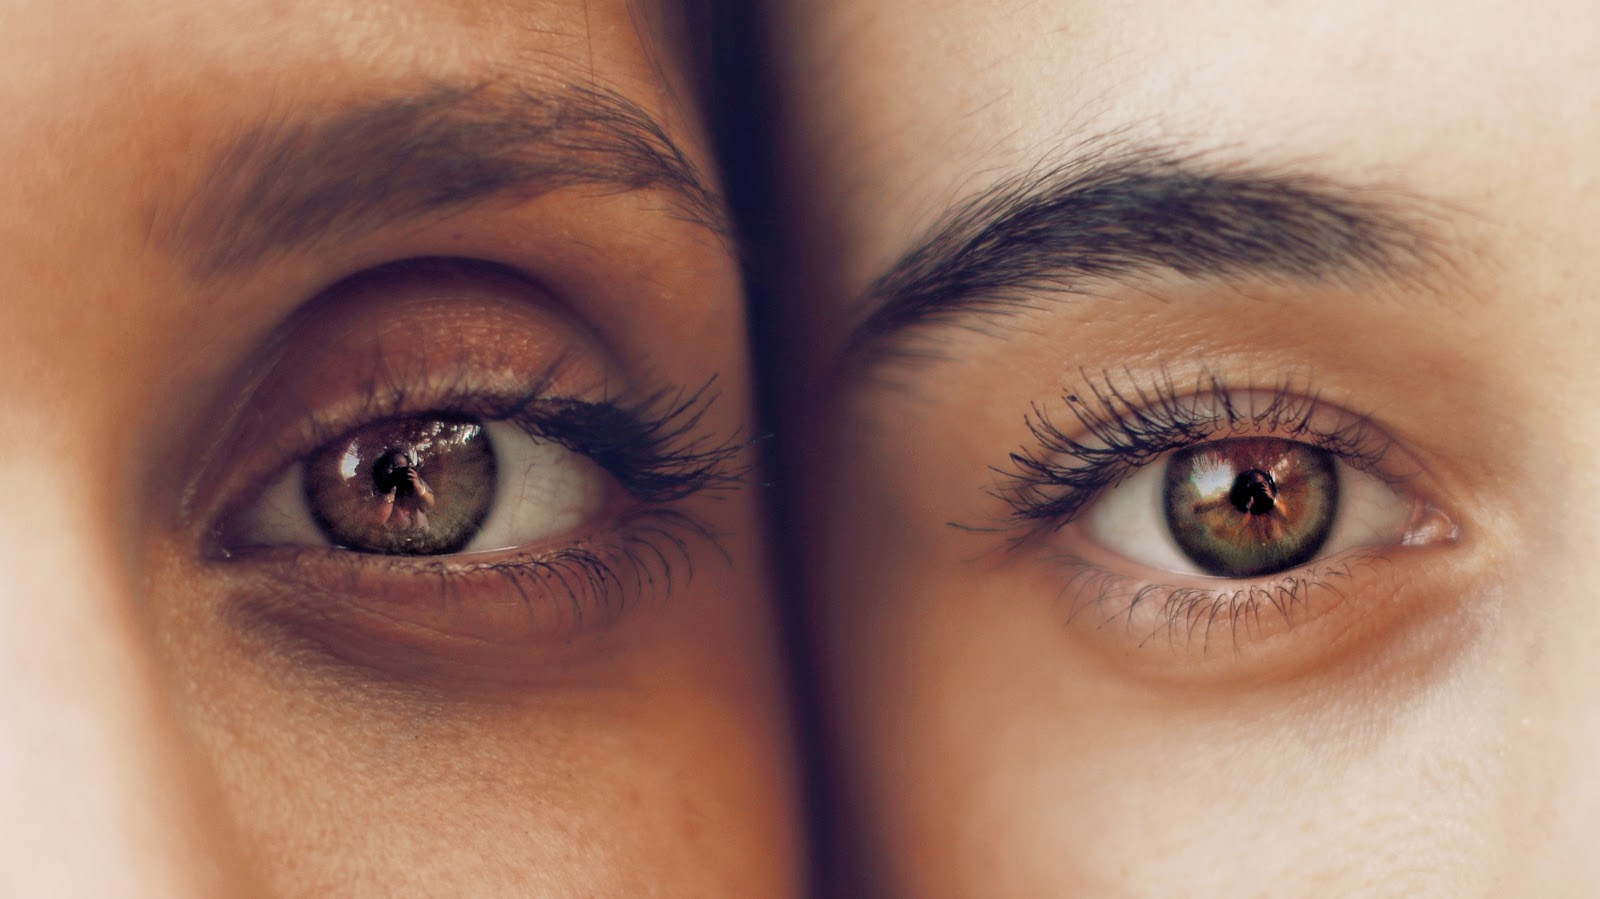 two eyes from two different women stand side by side